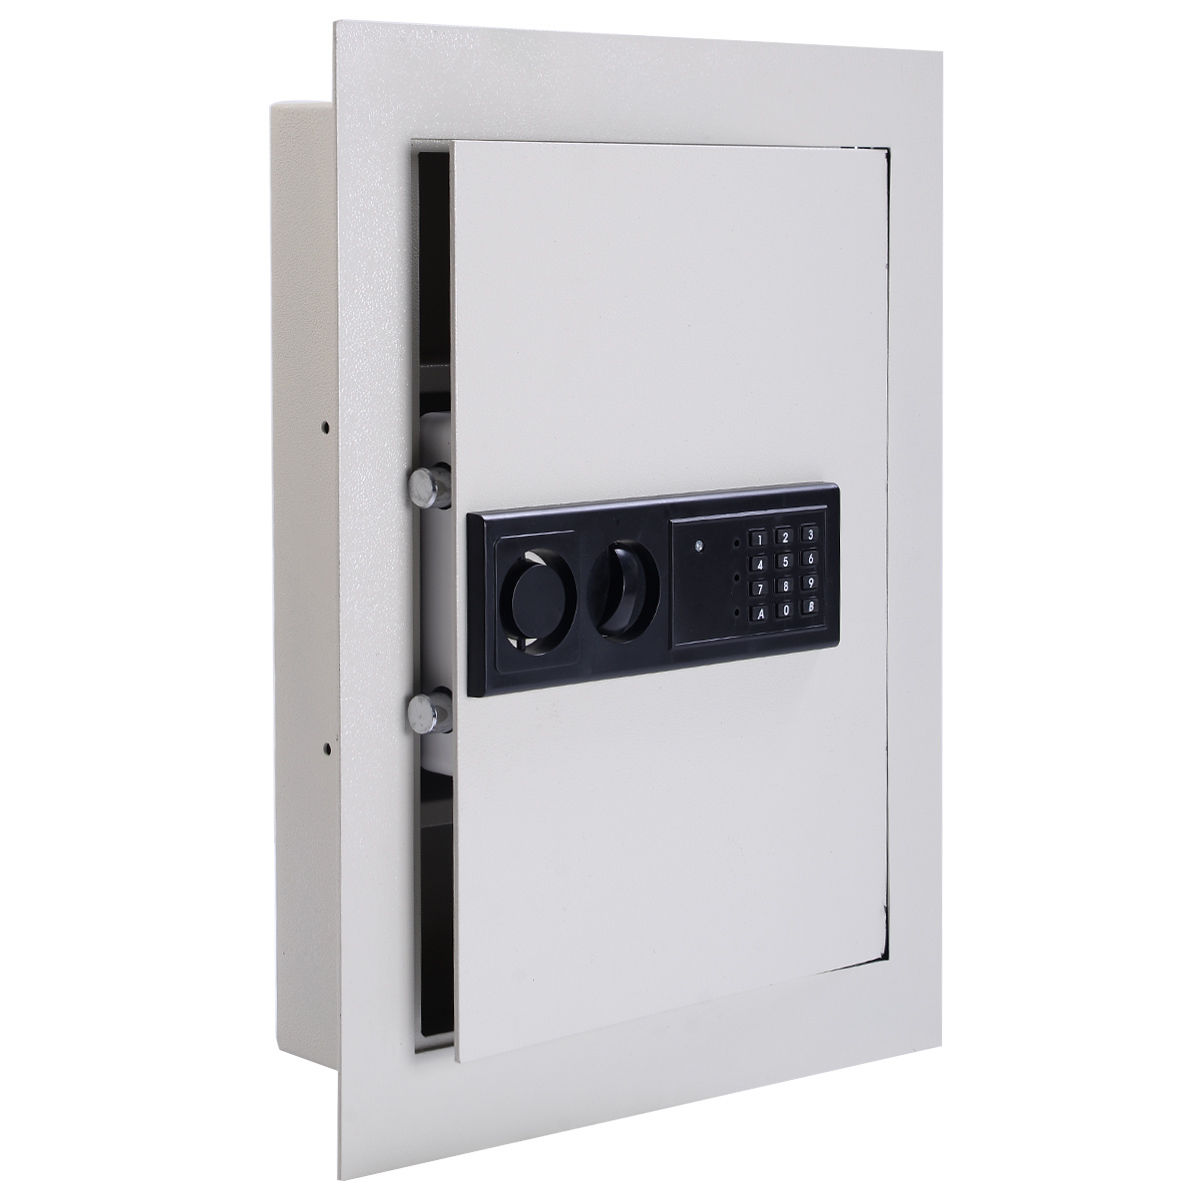 Digital Flat Recessed Wall Safe Security Lock Gun Cash Box